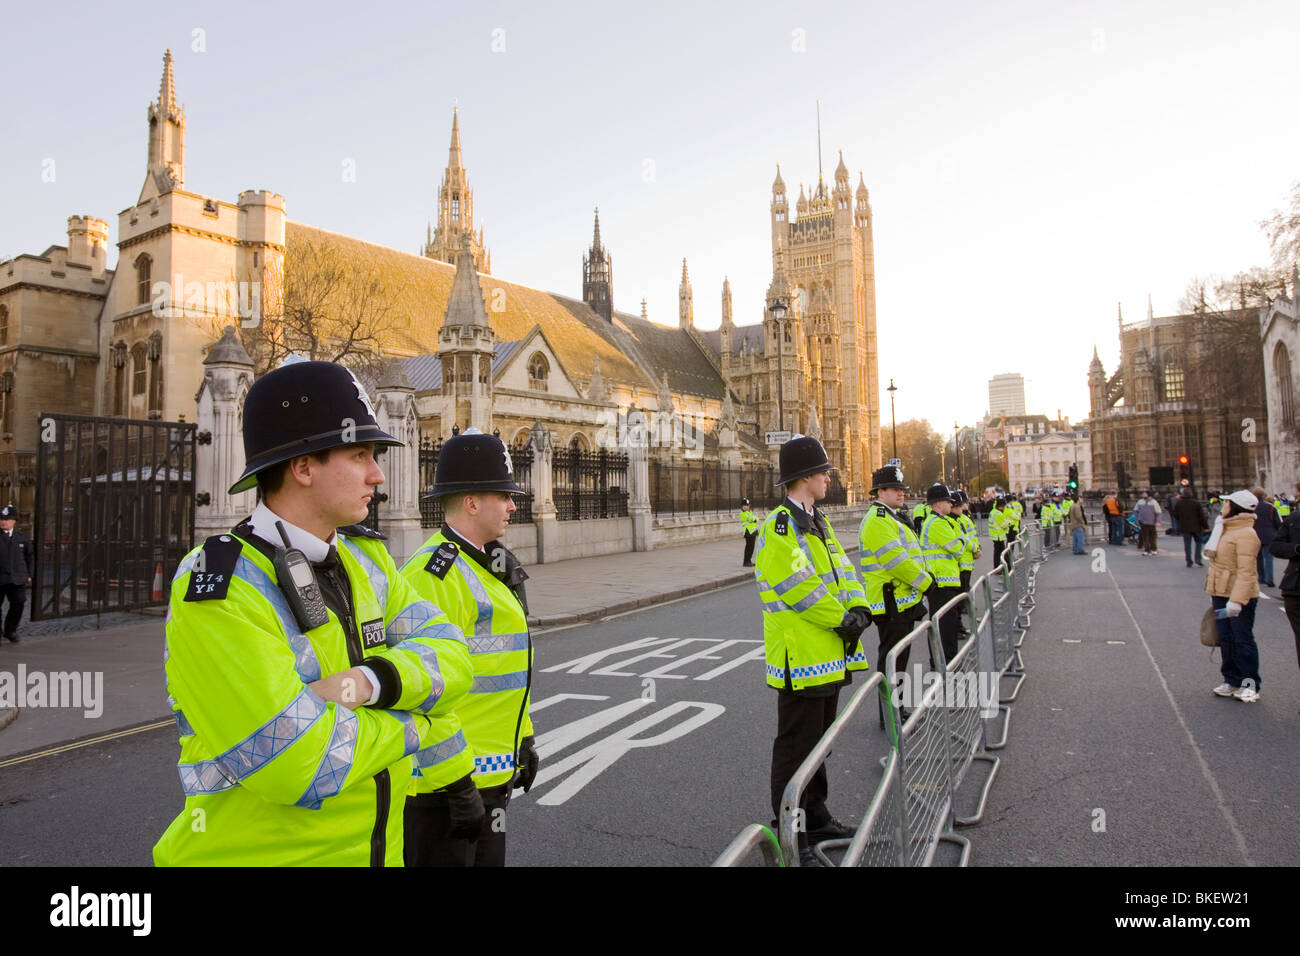 Police protecting the House of Parlaiment from climate change protestors on a rally in Parliament Square in December - Stock Image